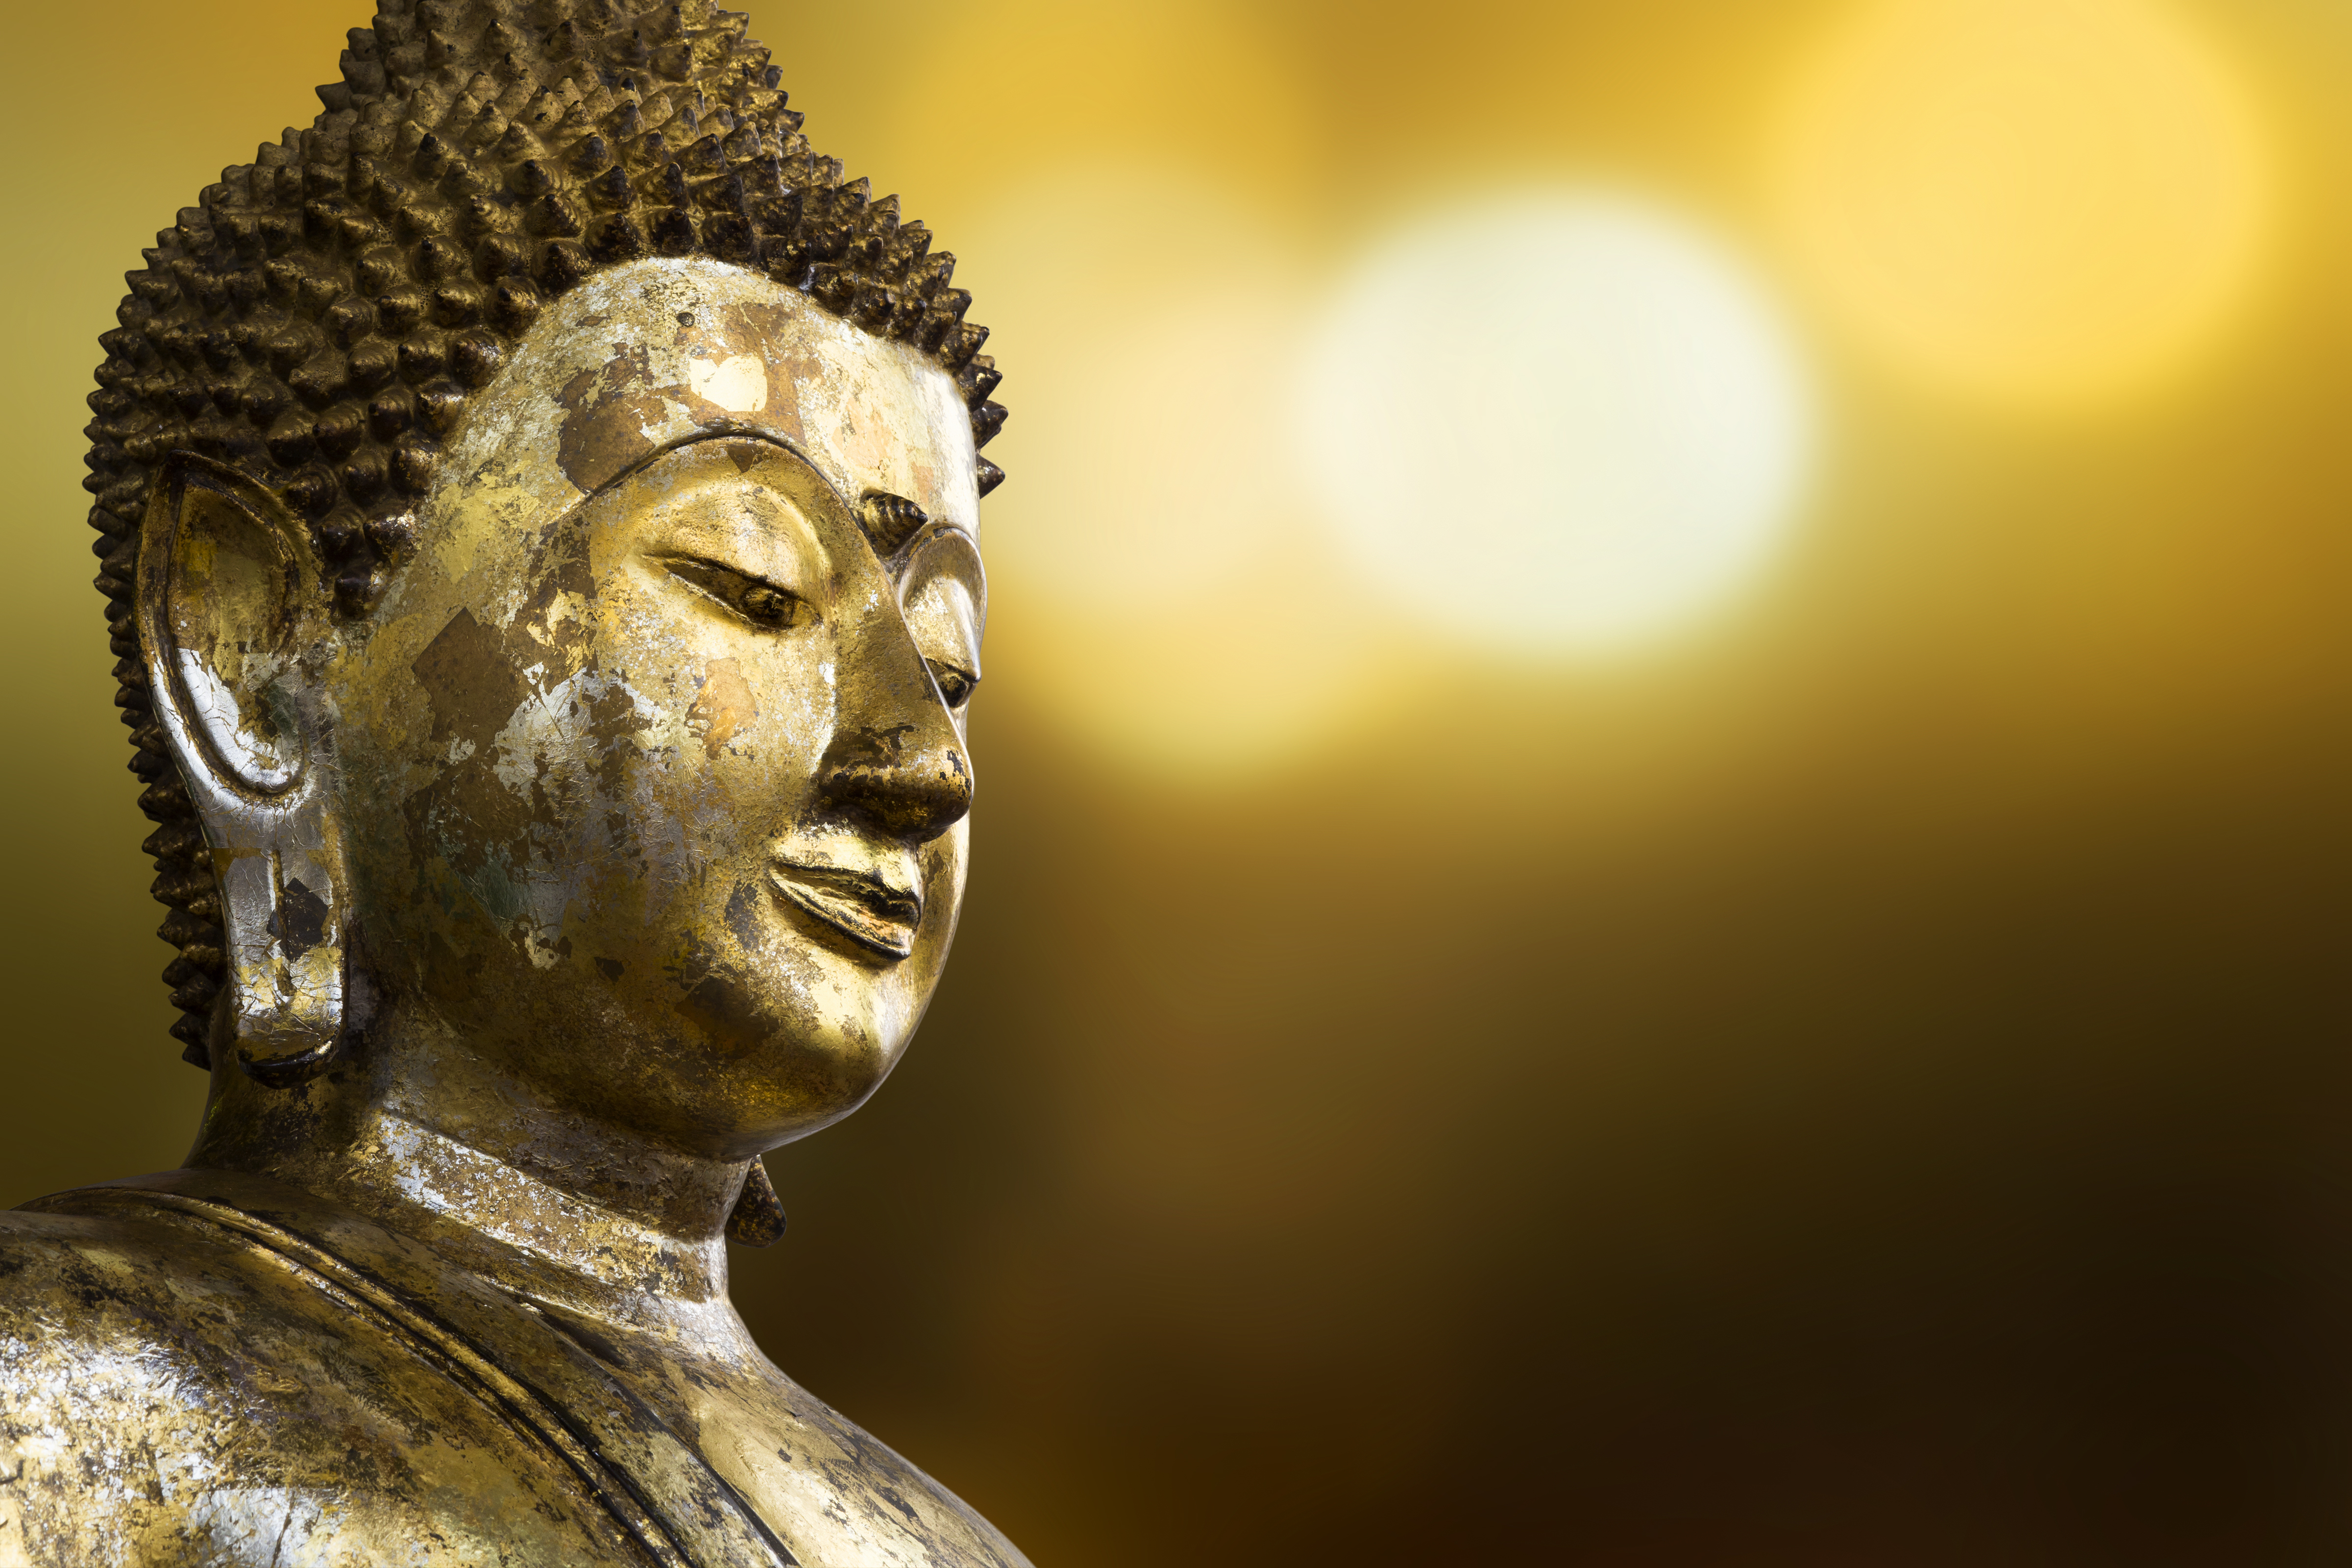 Our Spring Meditation and Buddhism Course